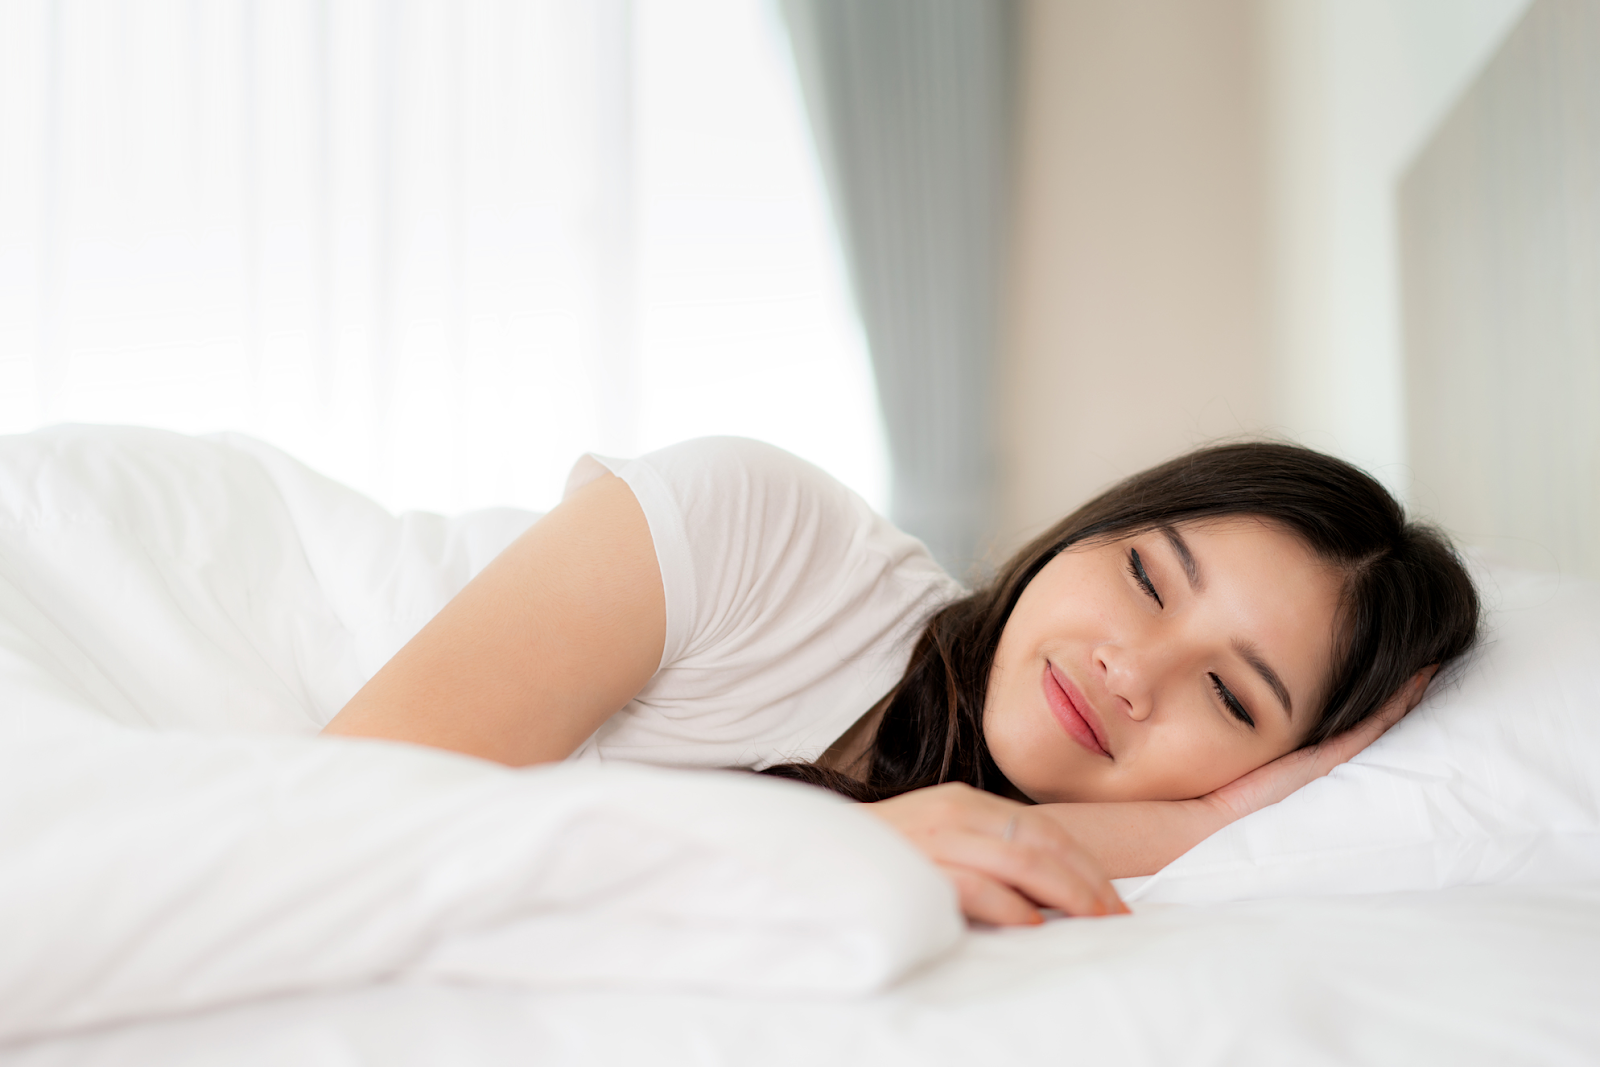 young woman sleeping peacefully on bed